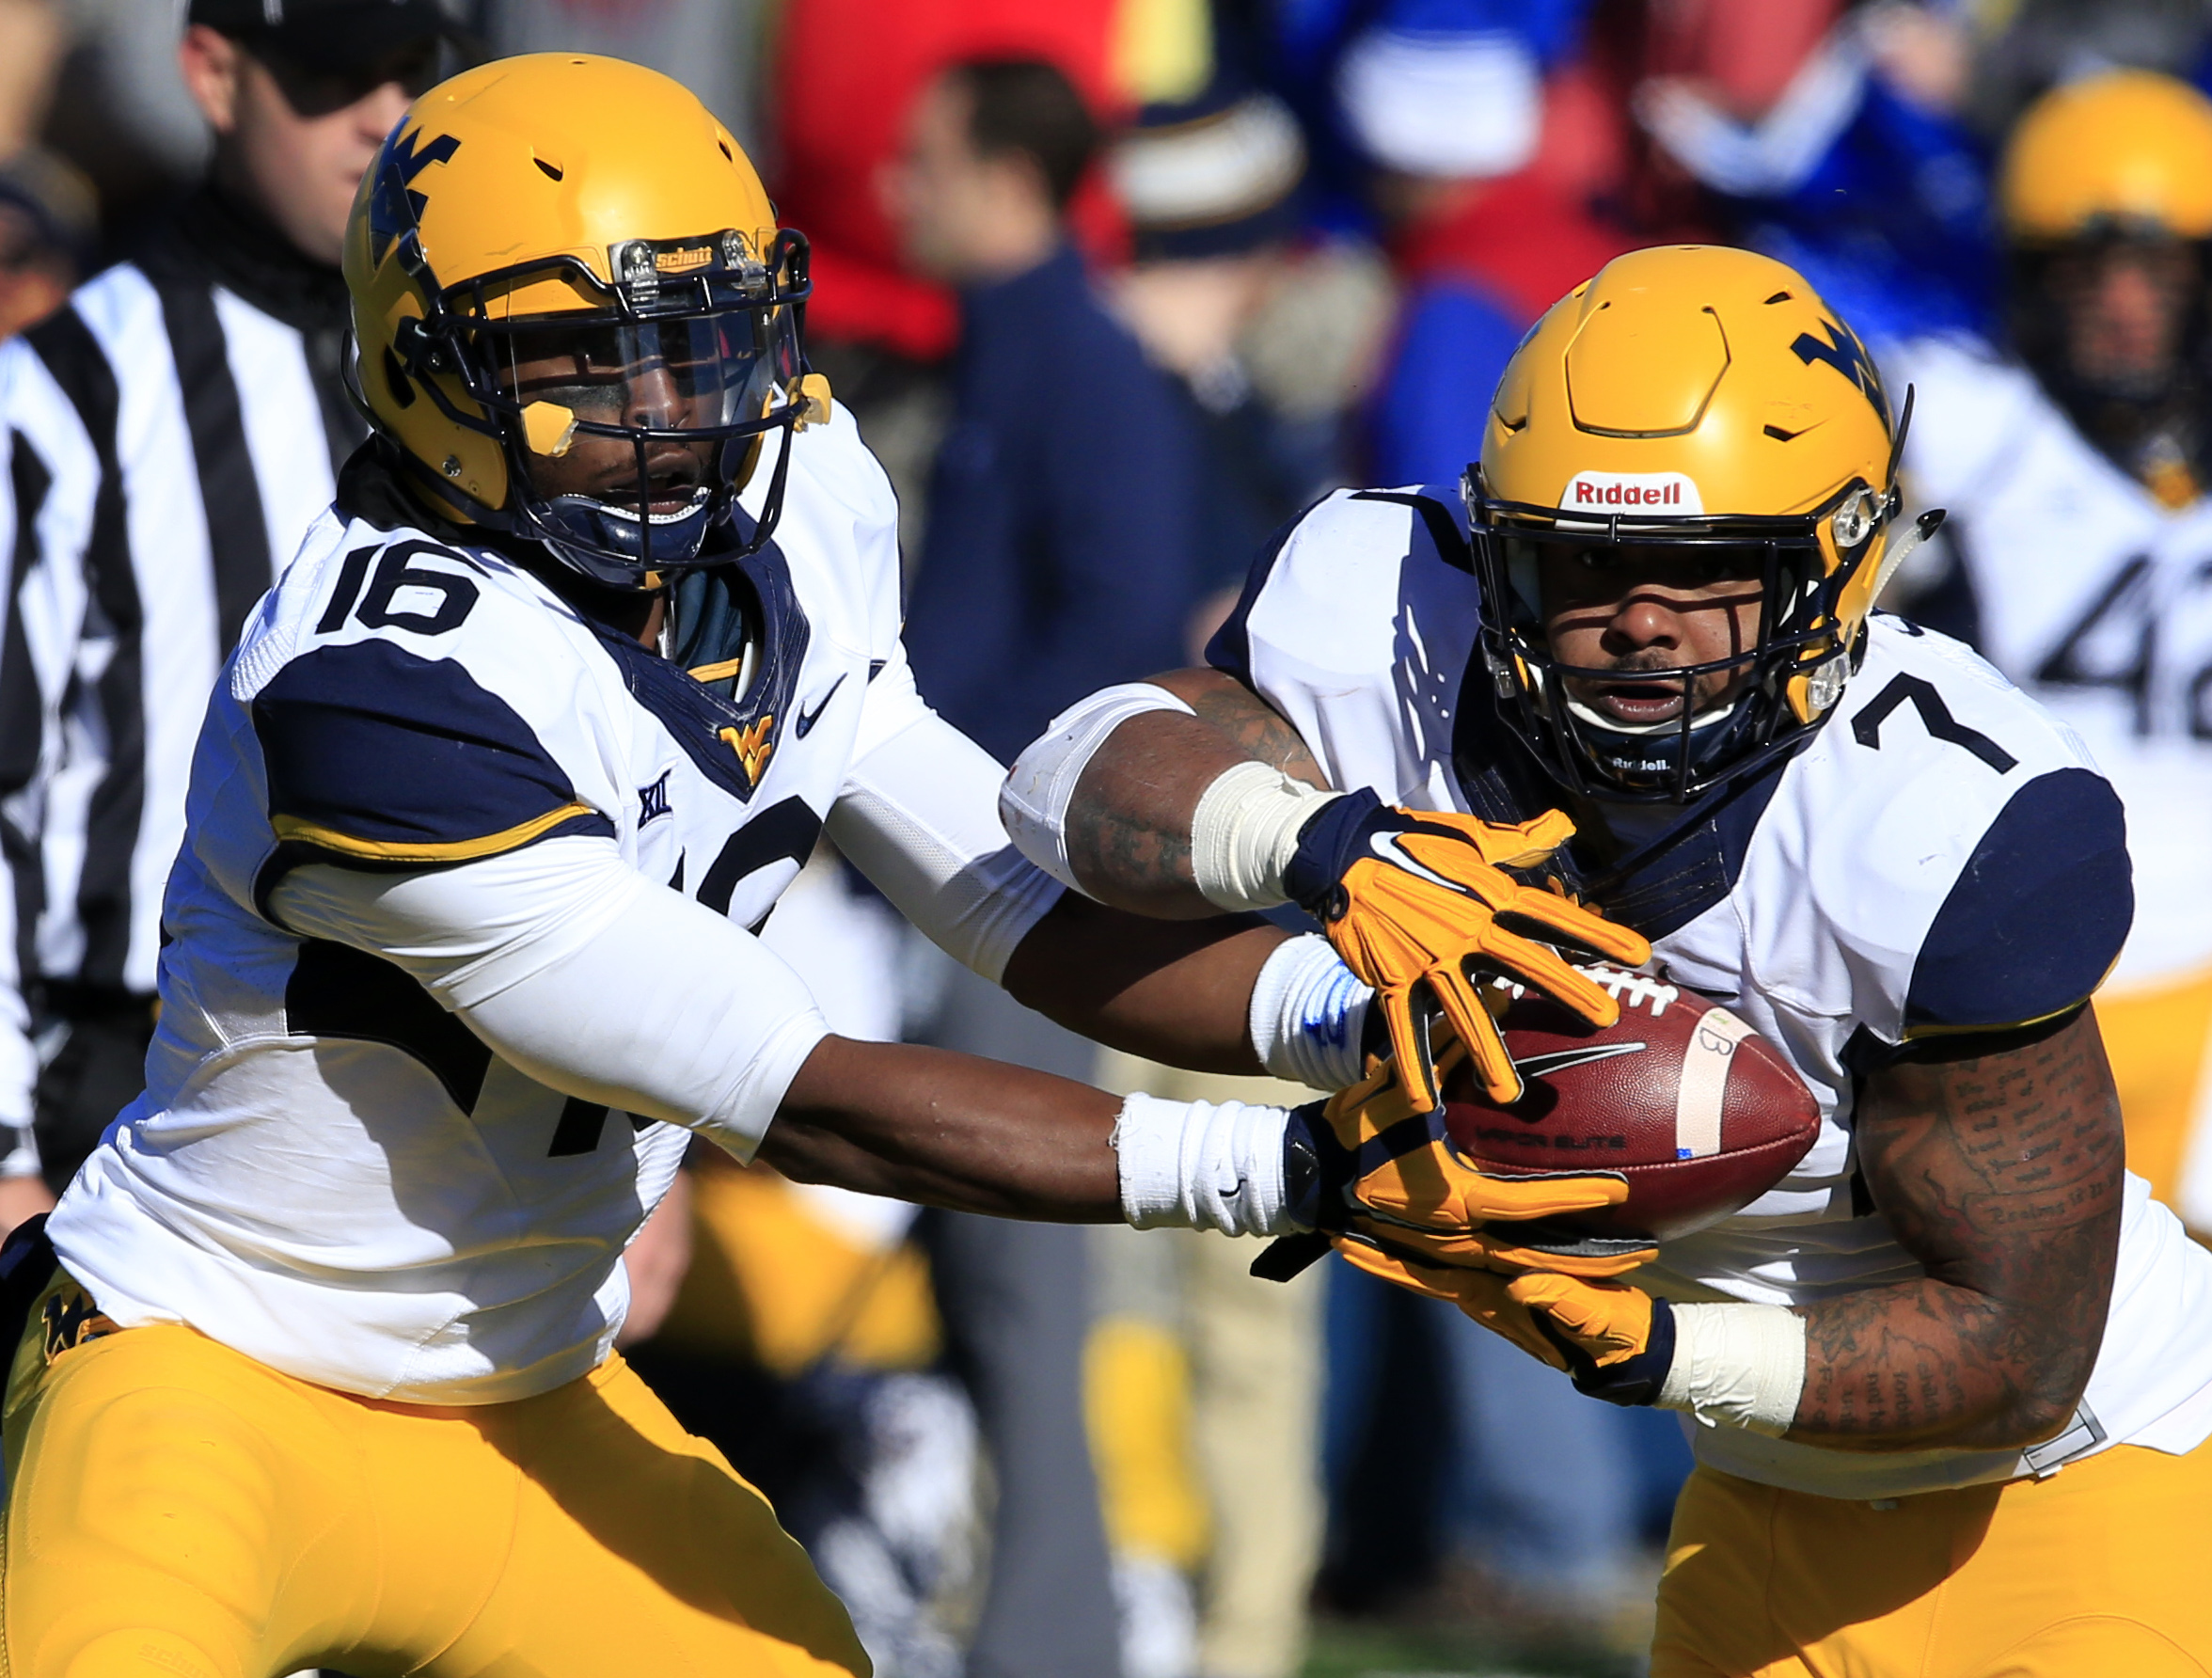 West Virginia quarterback William Crest Jr. (16) hands off to running back Andrew Buie (7) during the second half of an NCAA college football game against Kansas in Lawrence, Kan., Saturday, Nov. 21, 2015. (AP Photo/Orlin Wagner)